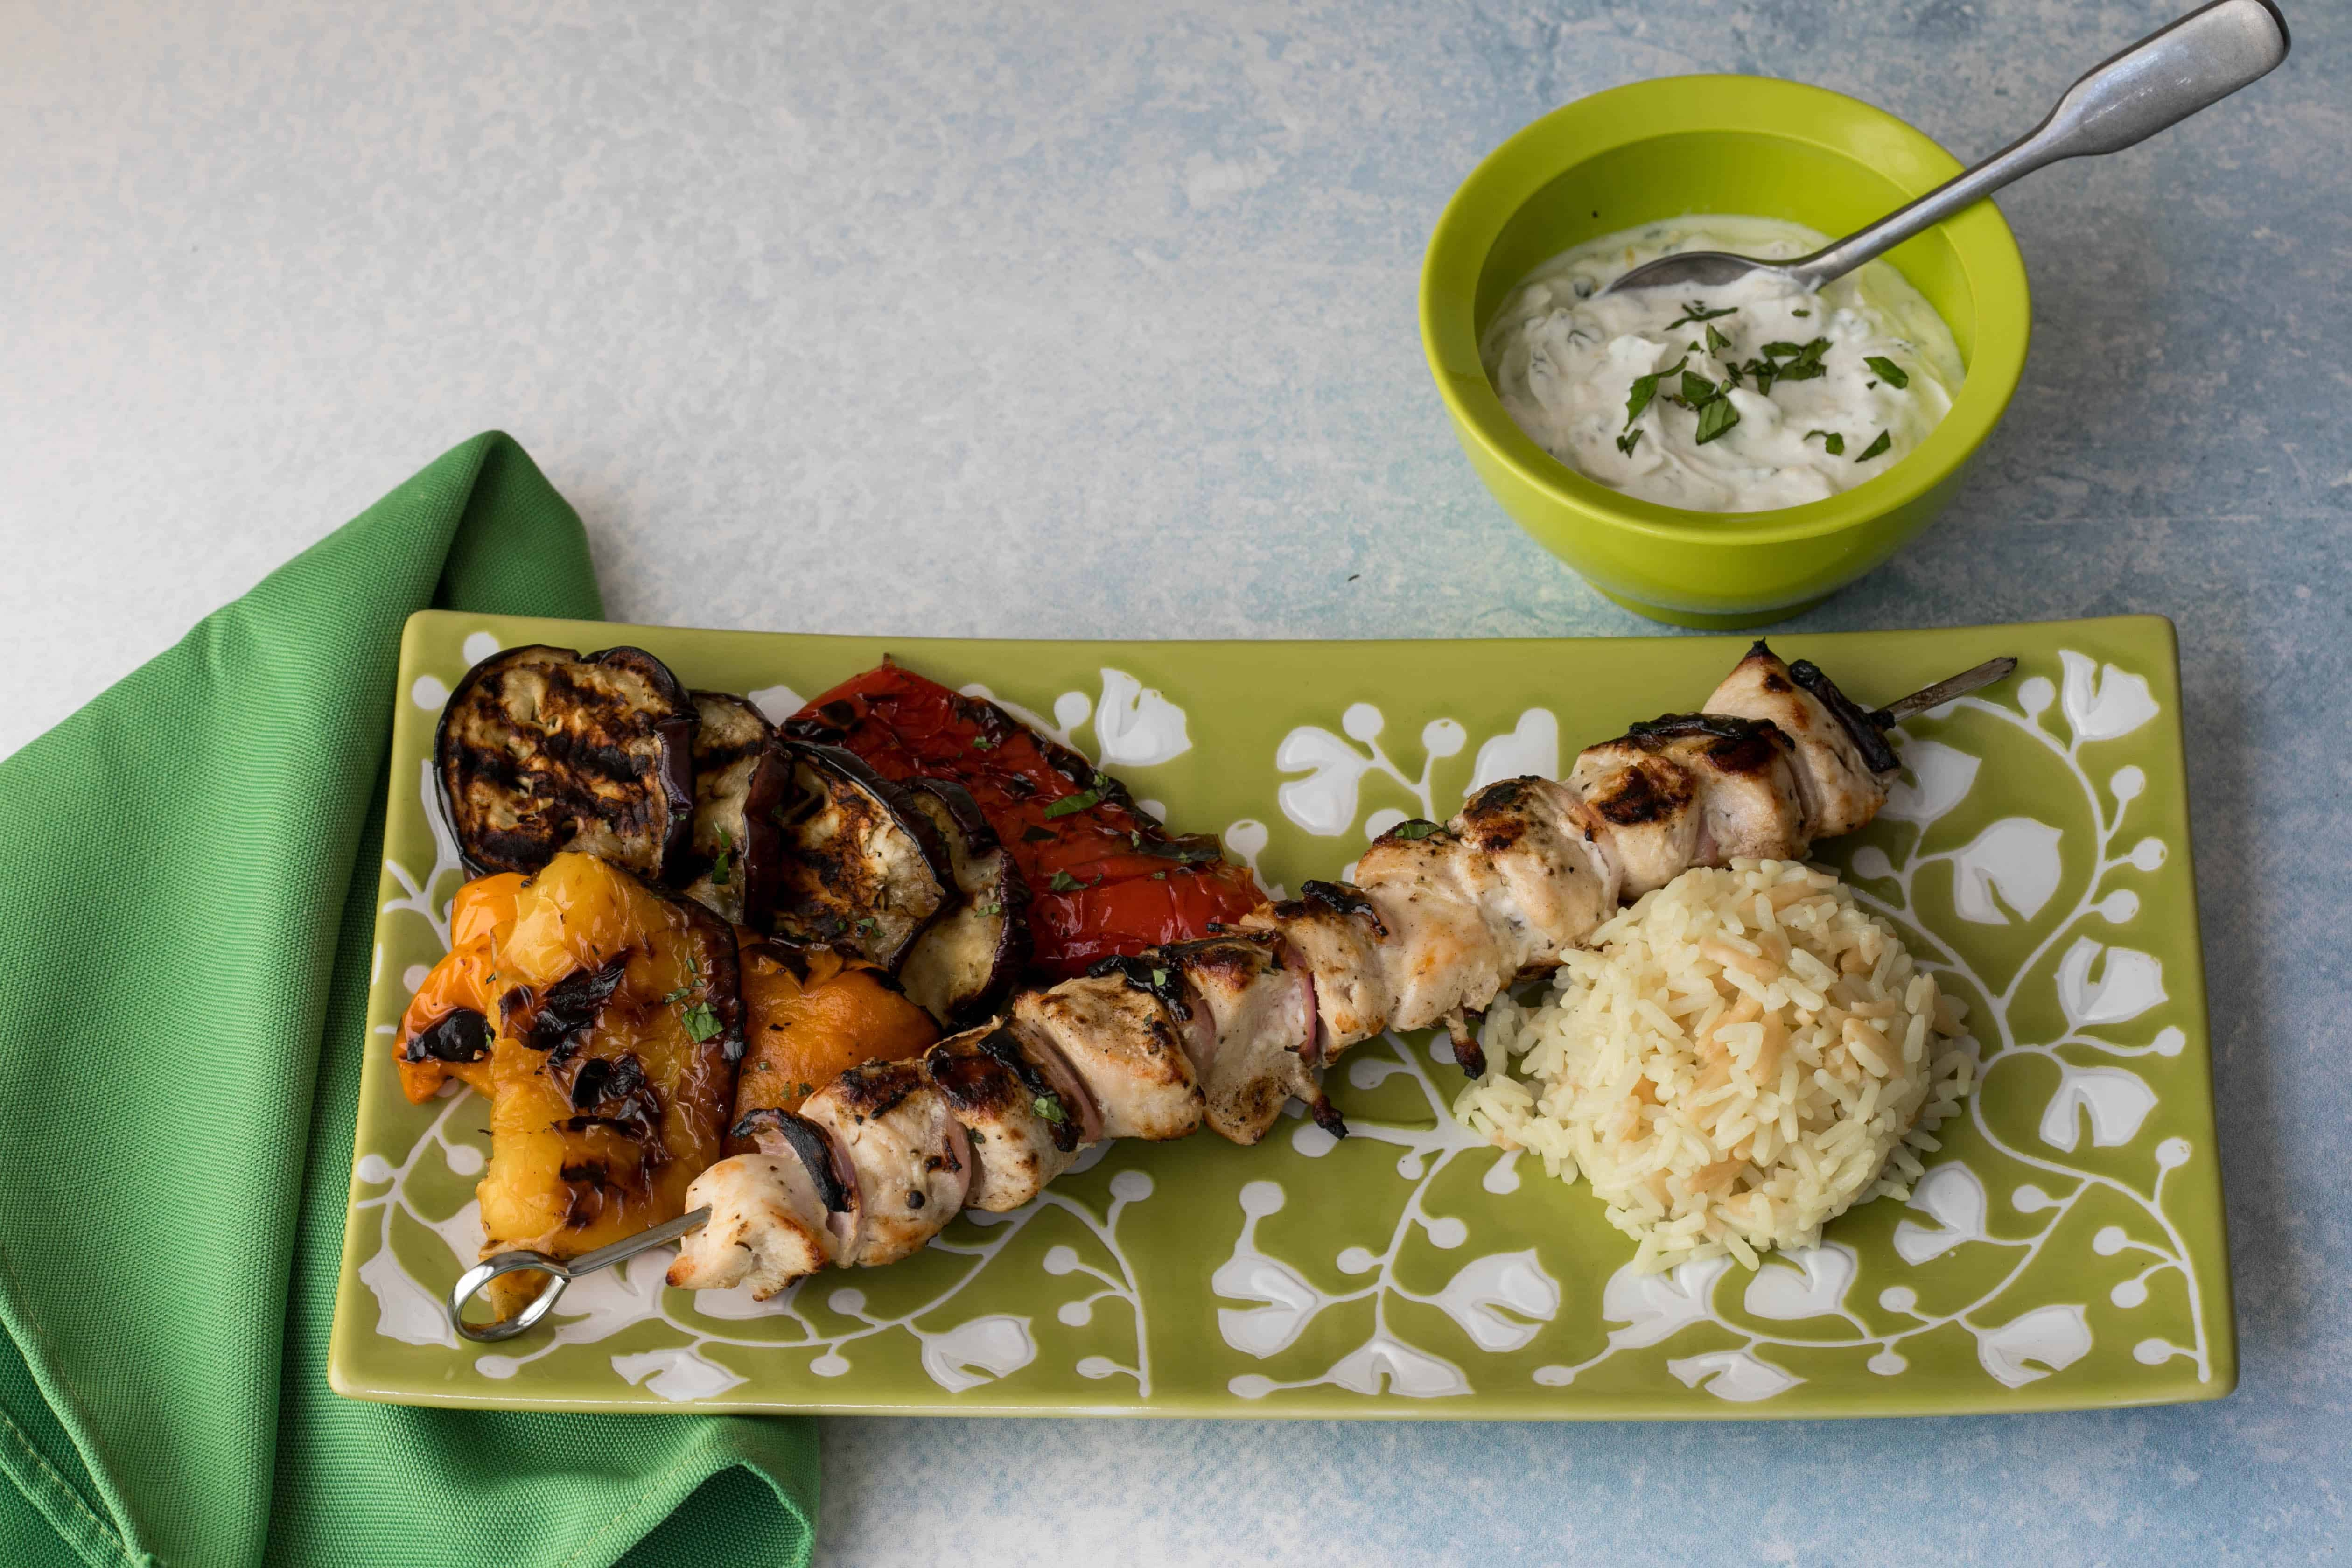 chicken kabobs with yogurt sauce, grilled vegetables, and rice pilaf